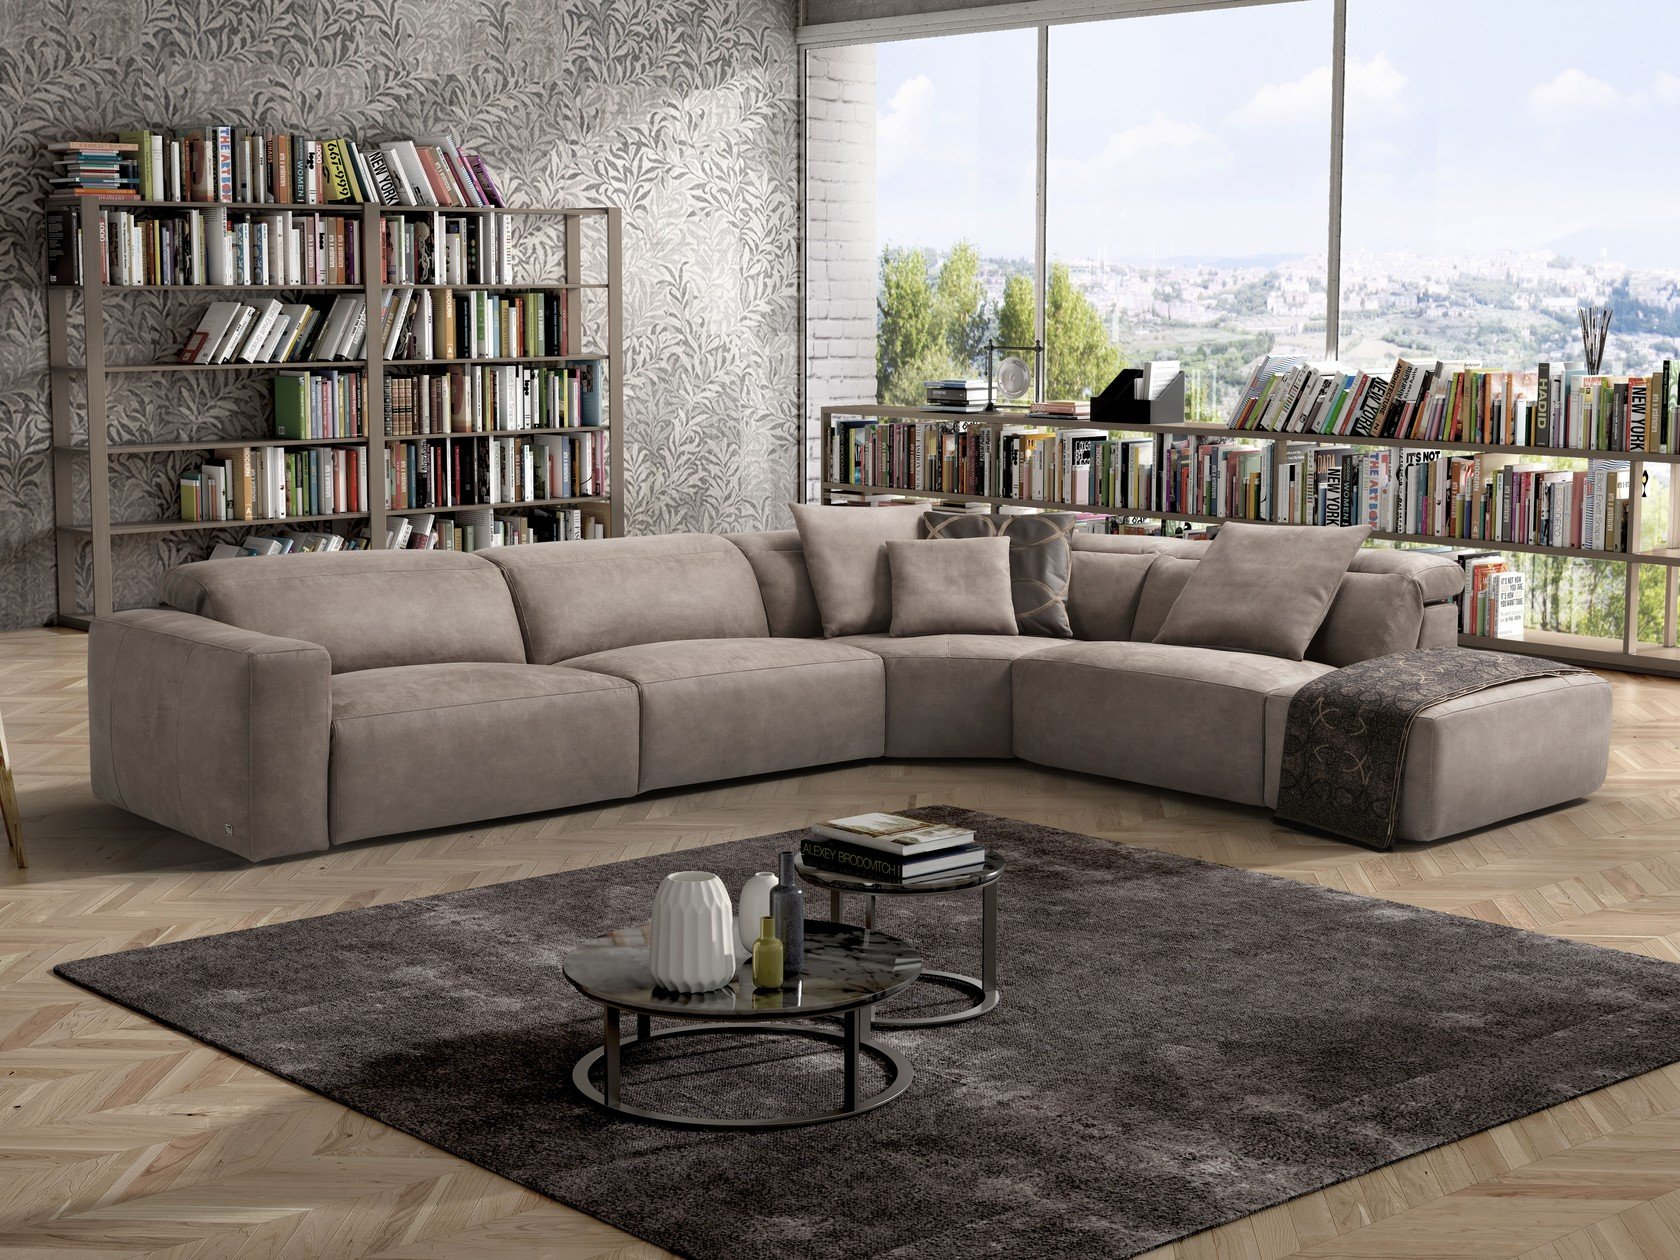 beverly ego italiano clever home